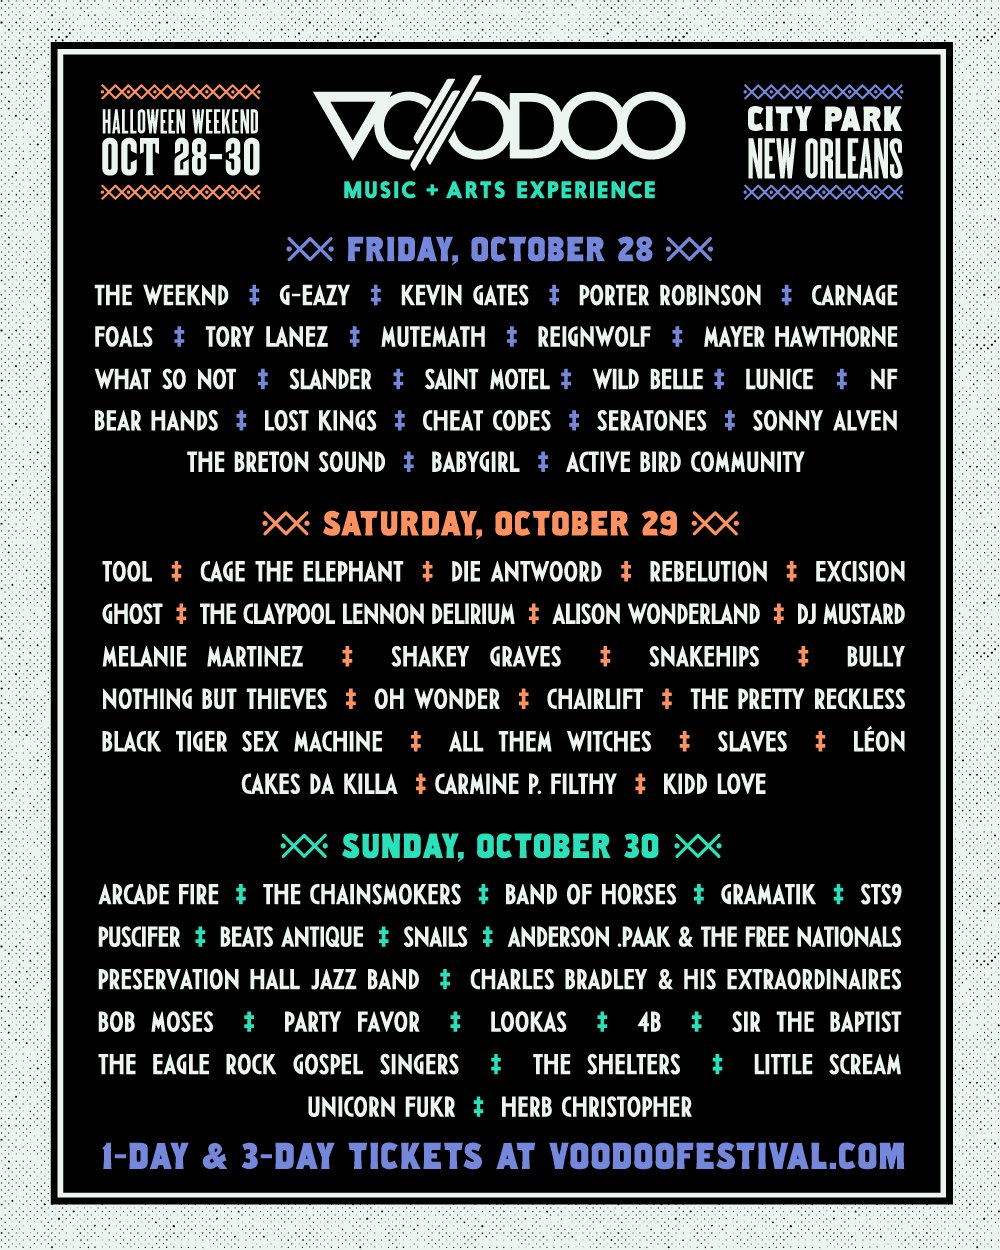 The #VoodooFest Lineup by Day is out! Grab a 1-Day or 3-Day Ticket and come hang - https://t.co/va1Gd1A5ch https://t.co/VOtU2EpyXi